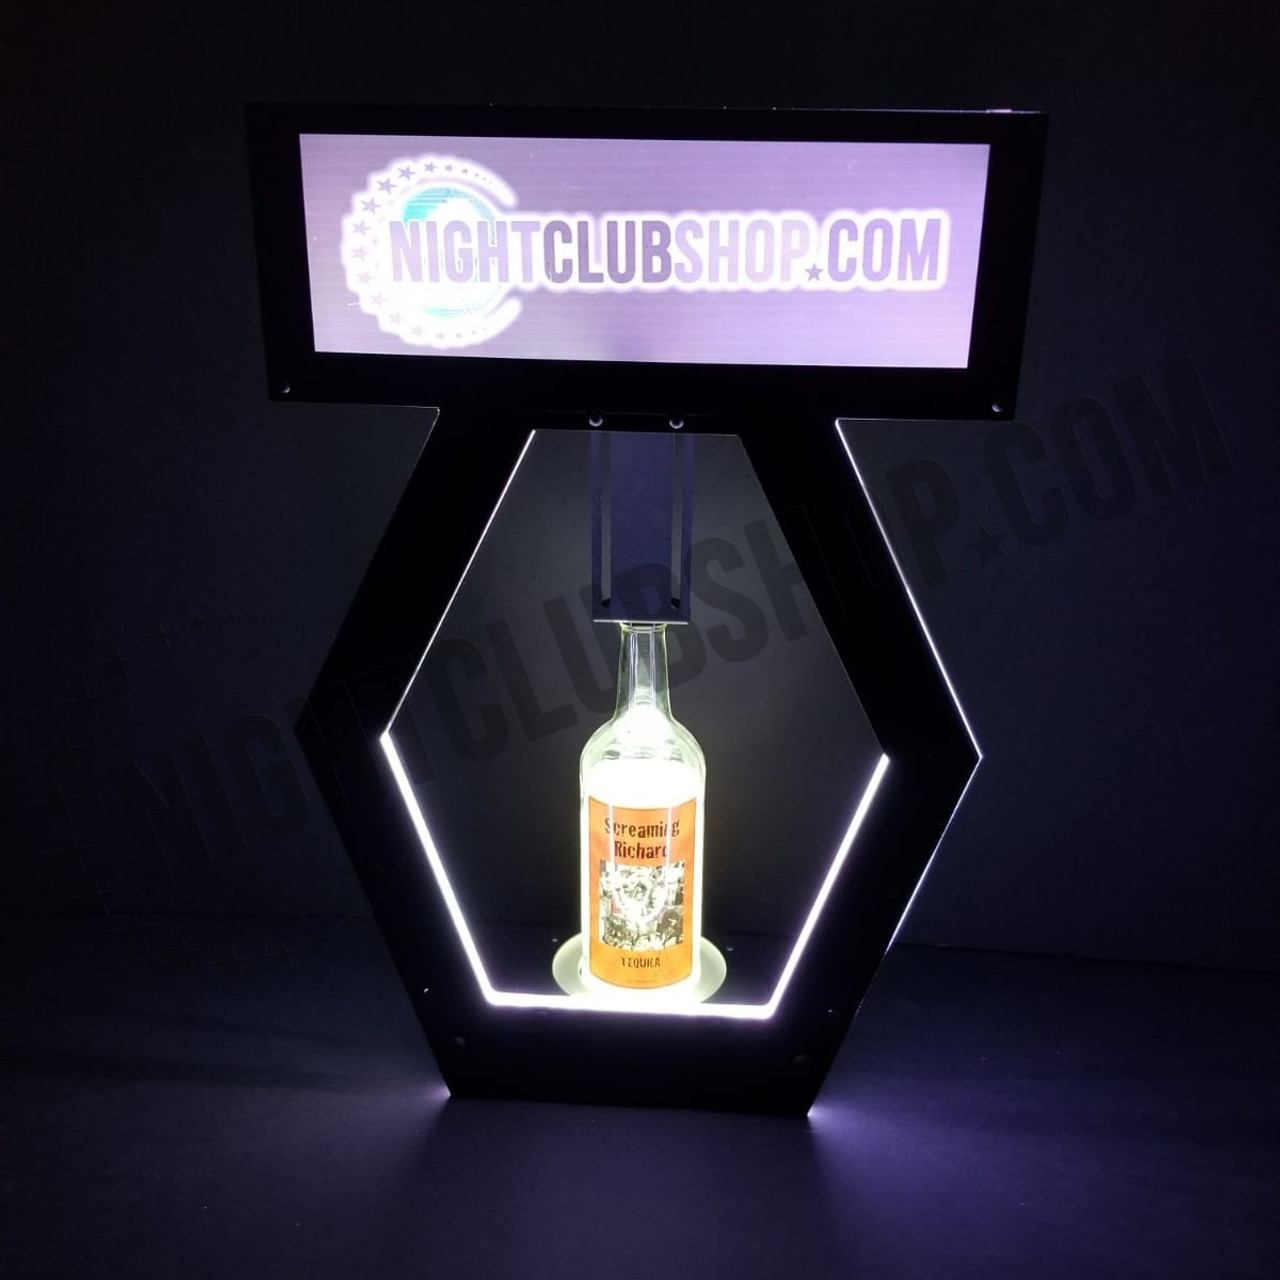 Banner, Top, VIP, NEW, Adjustable, Interchangeable, Print,  LED, Remote, Controlled, RGB, DMXR, Nightclubshop